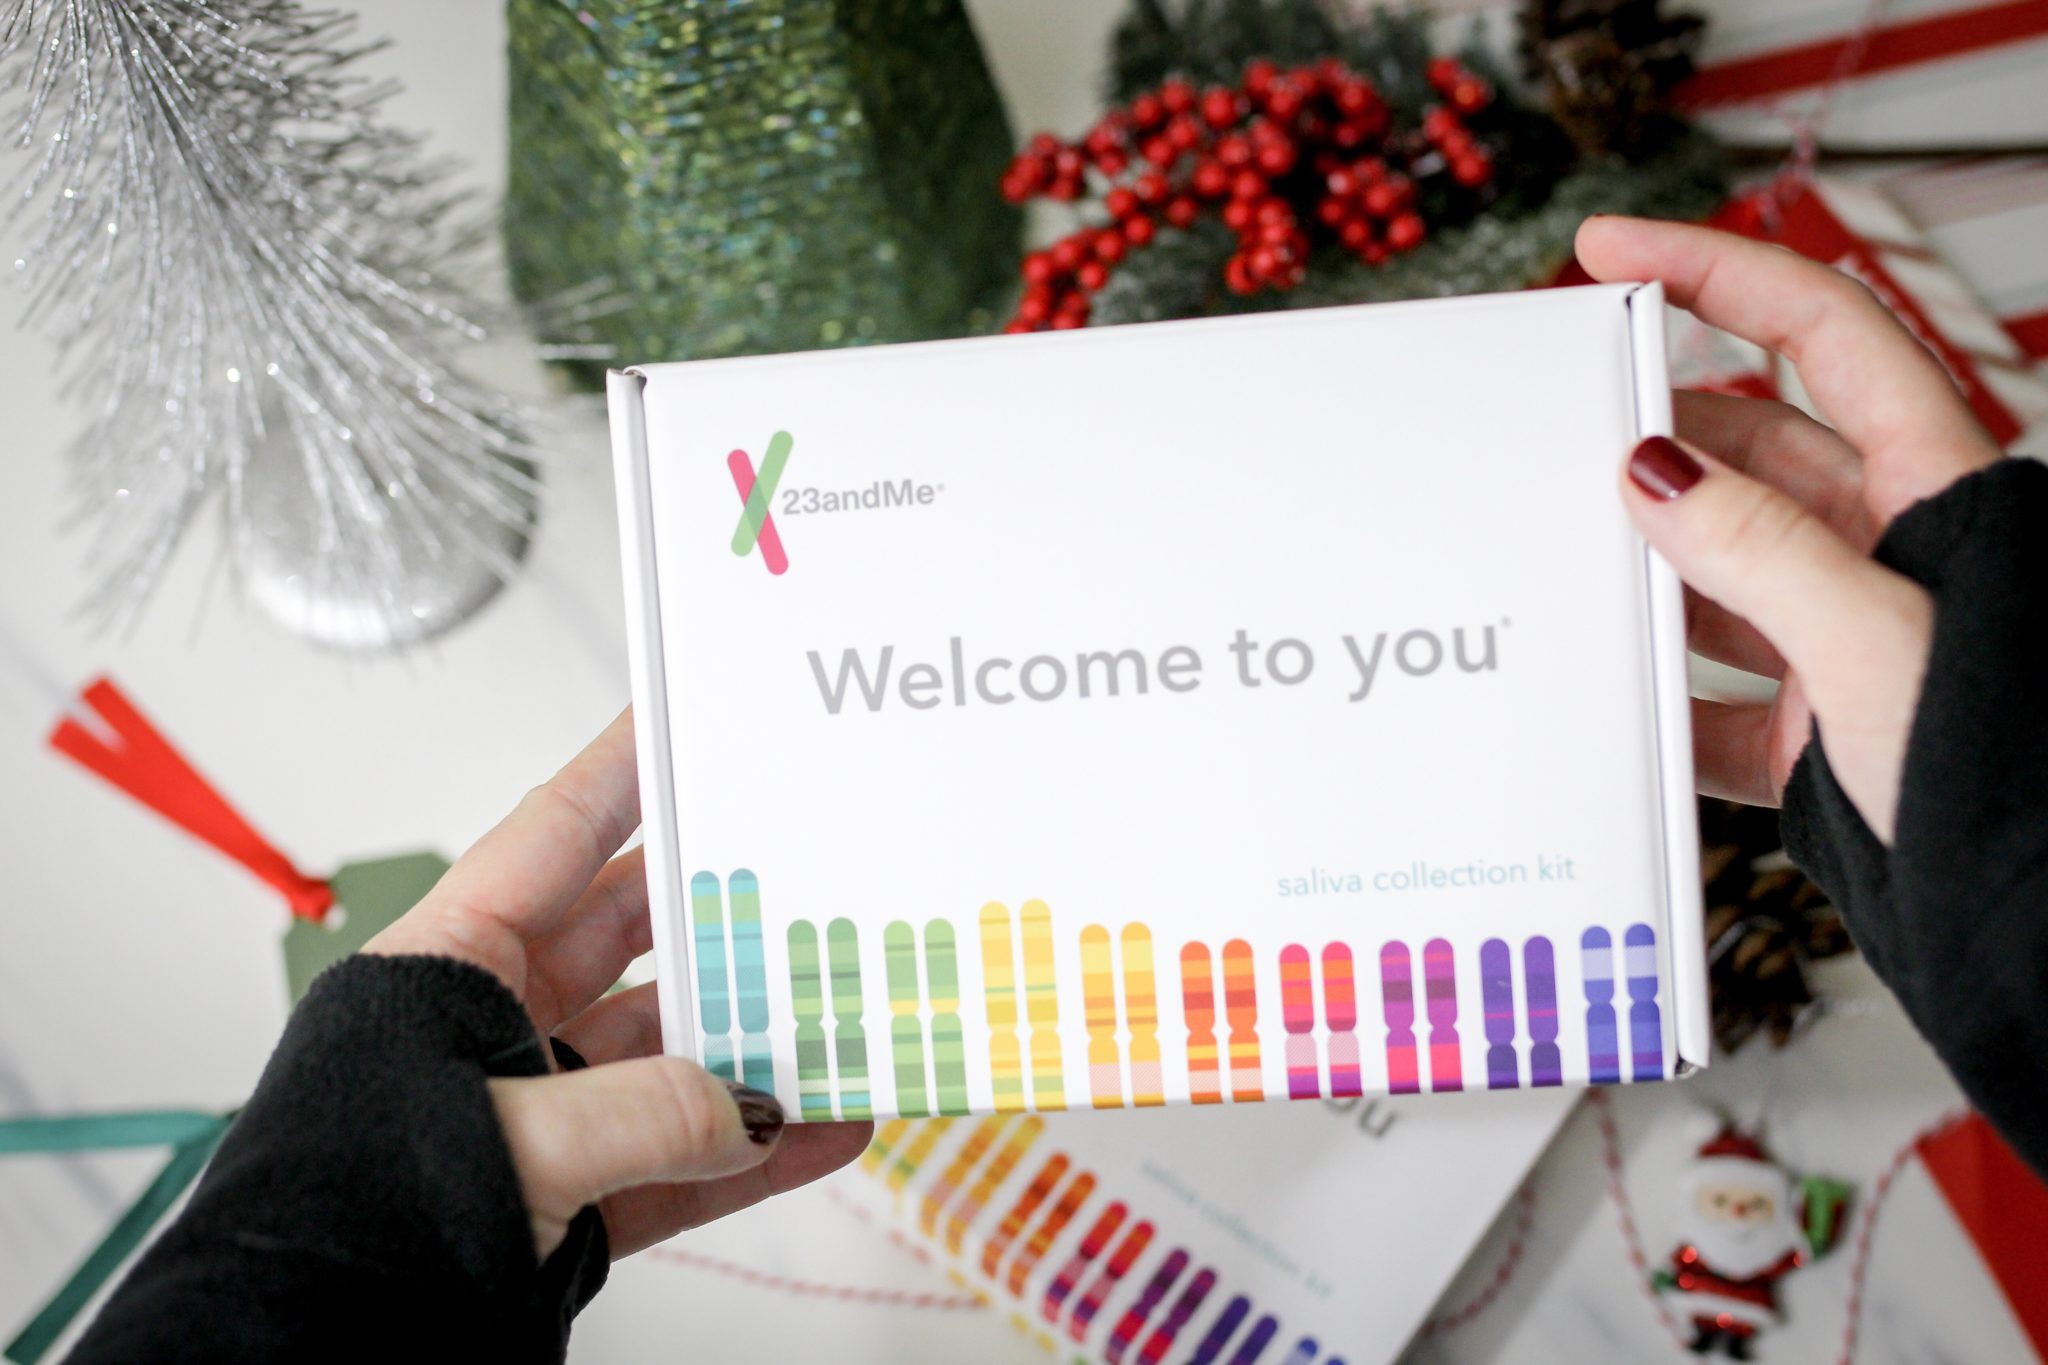 #ad #23andMeGifting DNA Testing kit reviews, dna testing for ethnicity, best ancestry dna test, 23 and me dna test, ancestry dna reviews, my heritage dna